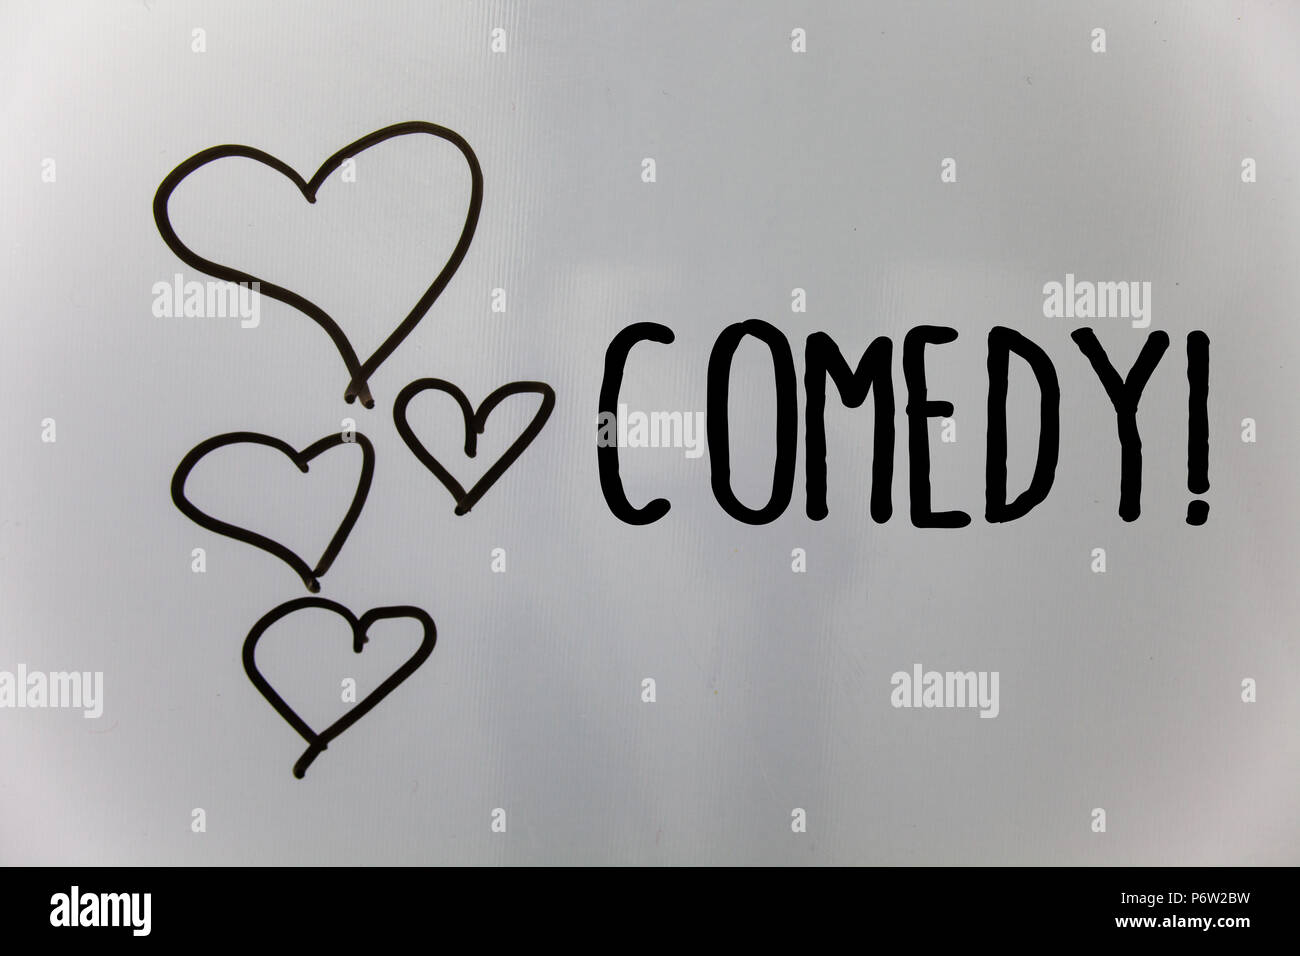 Word writing text Comedy Call. Business concept for Fun Humor Satire Sitcom Hilarity Joking Entertainment Laughing Hearts white background ideas messa - Stock Image